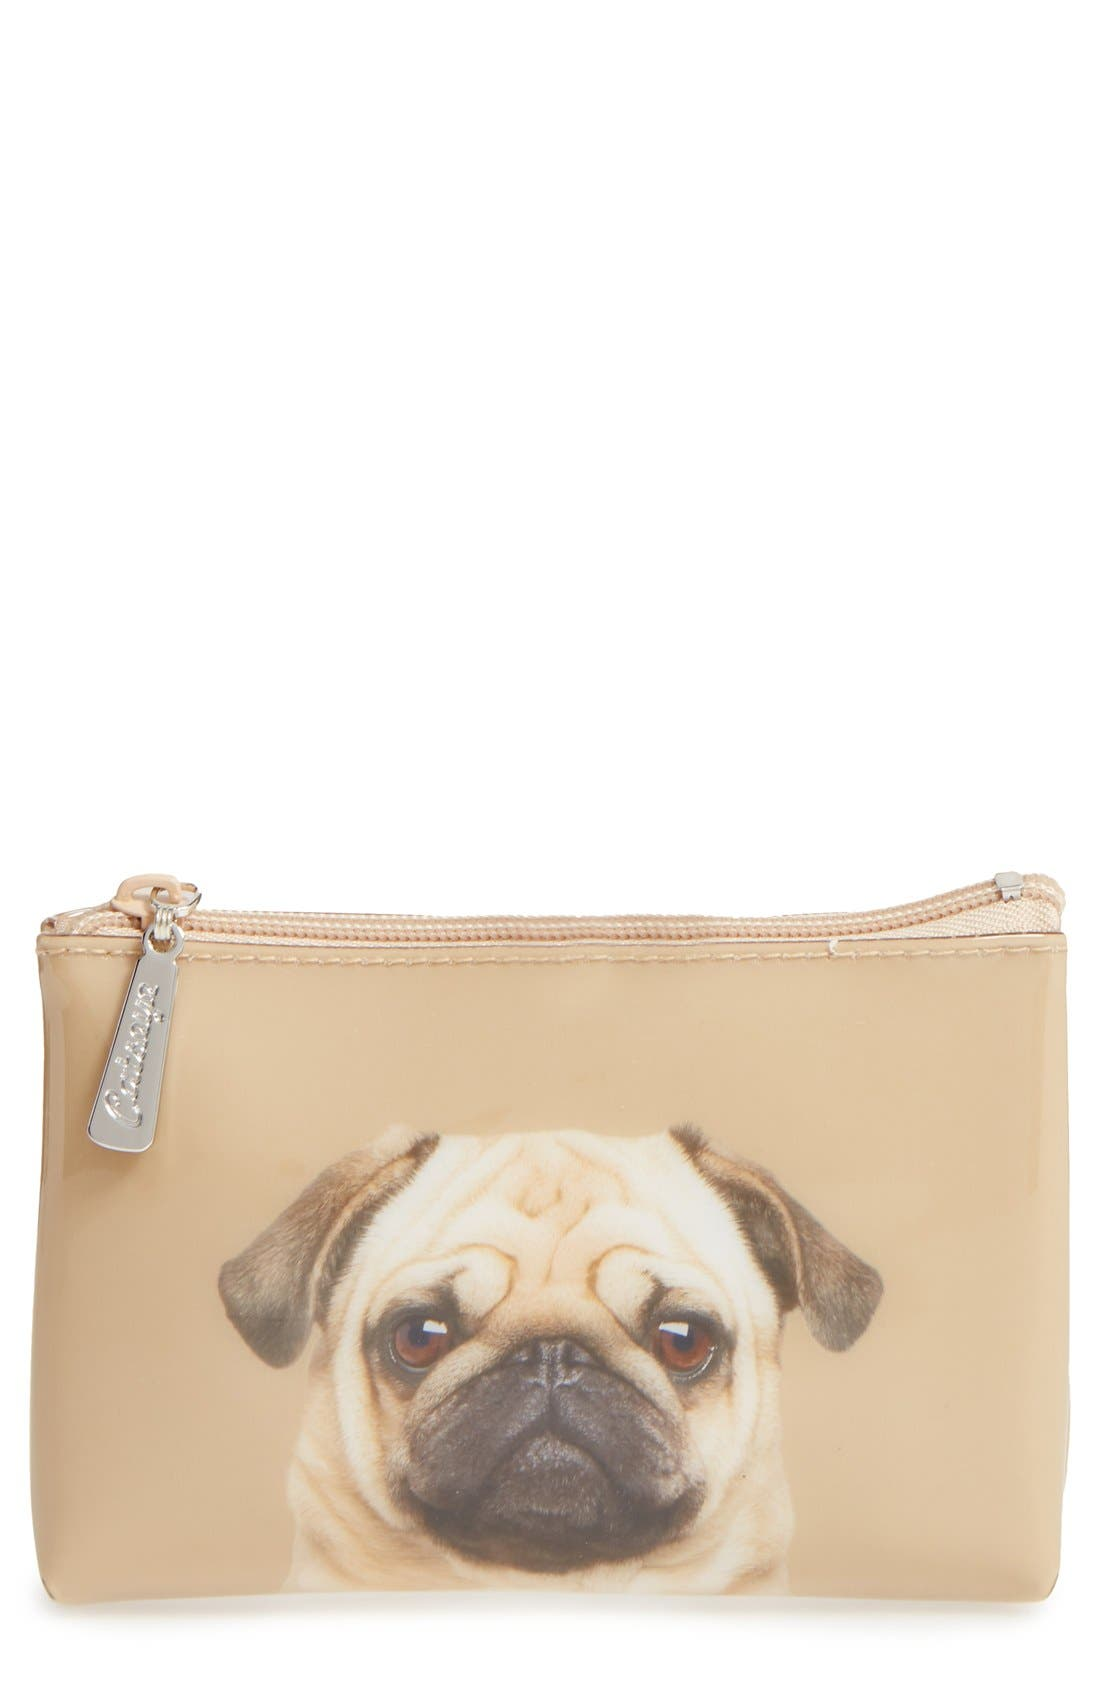 Caramel Pug Small Zip Pouch,                         Main,                         color,